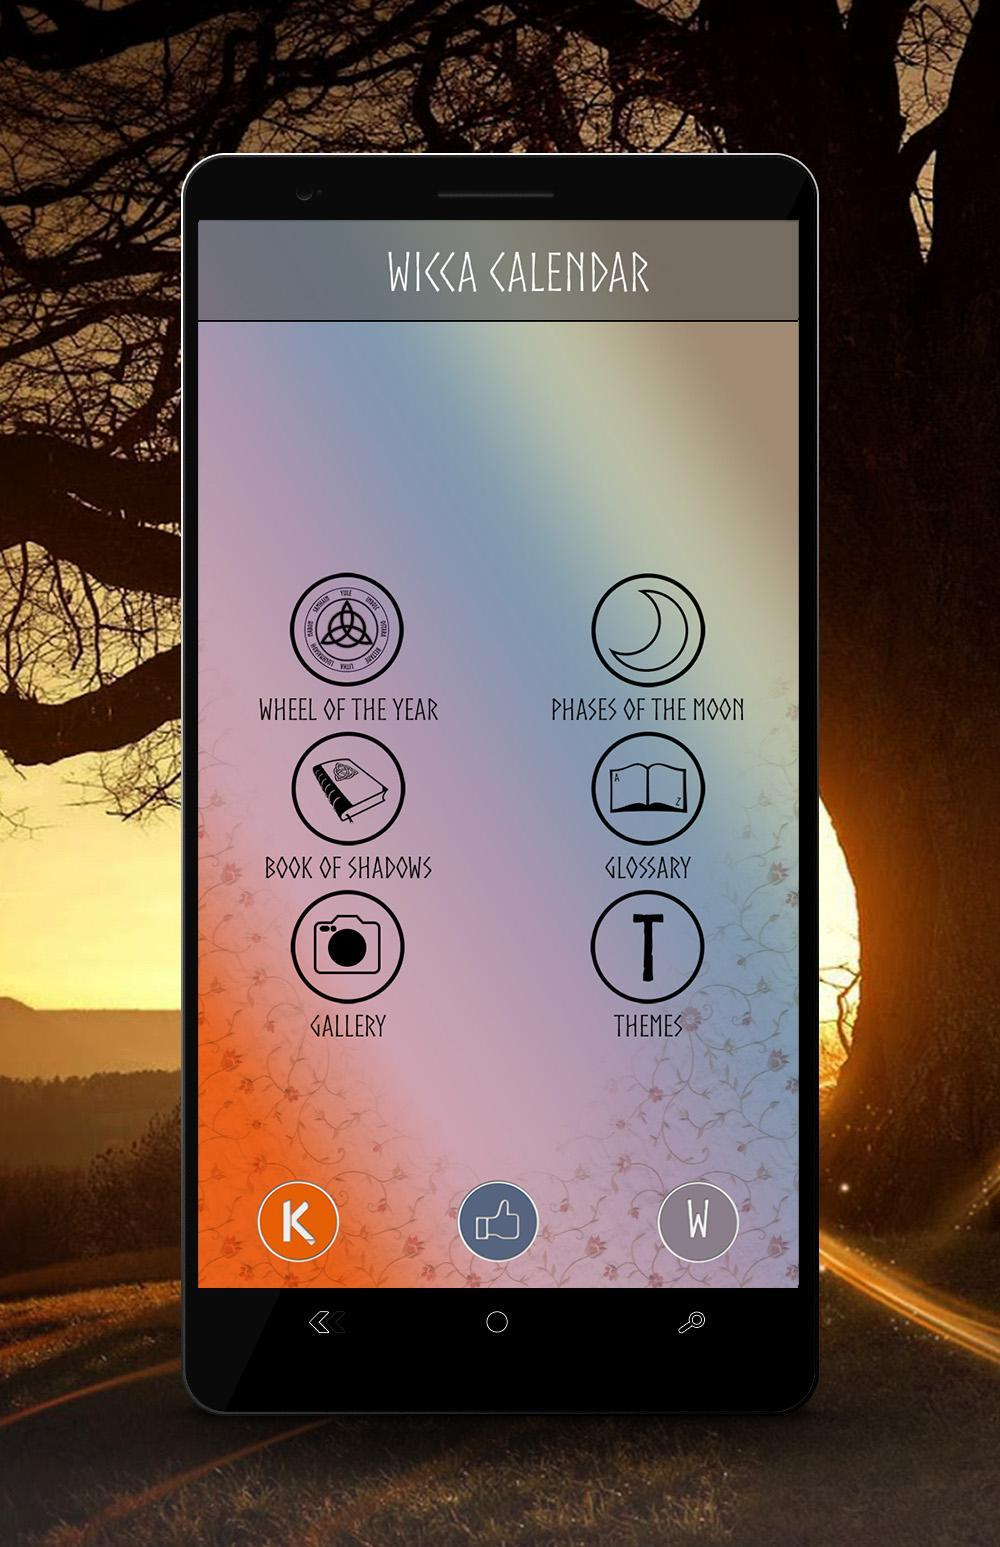 Wicca Calendar for Android - APK Download